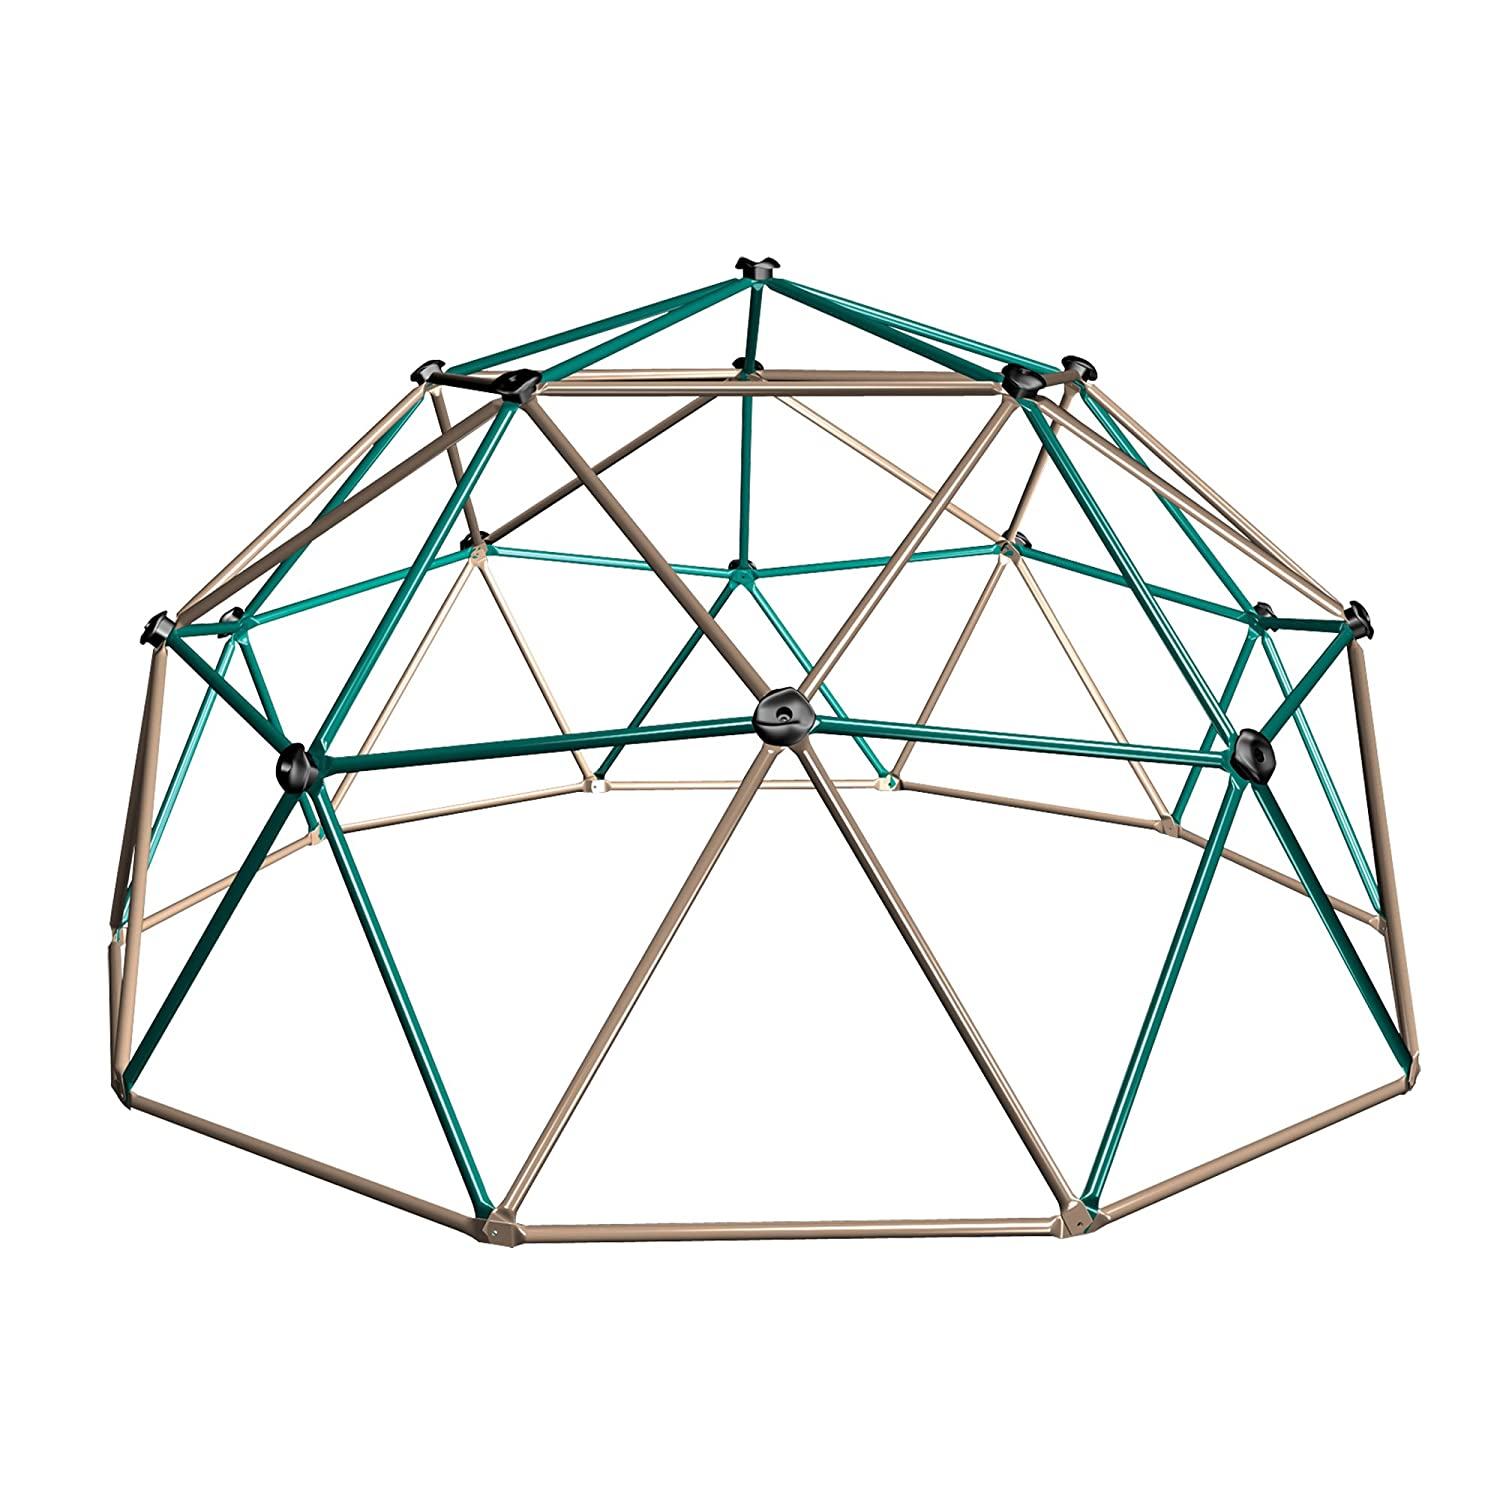 Lifetime Geometric Dome Climber Jungle Gym Earthtone 90136